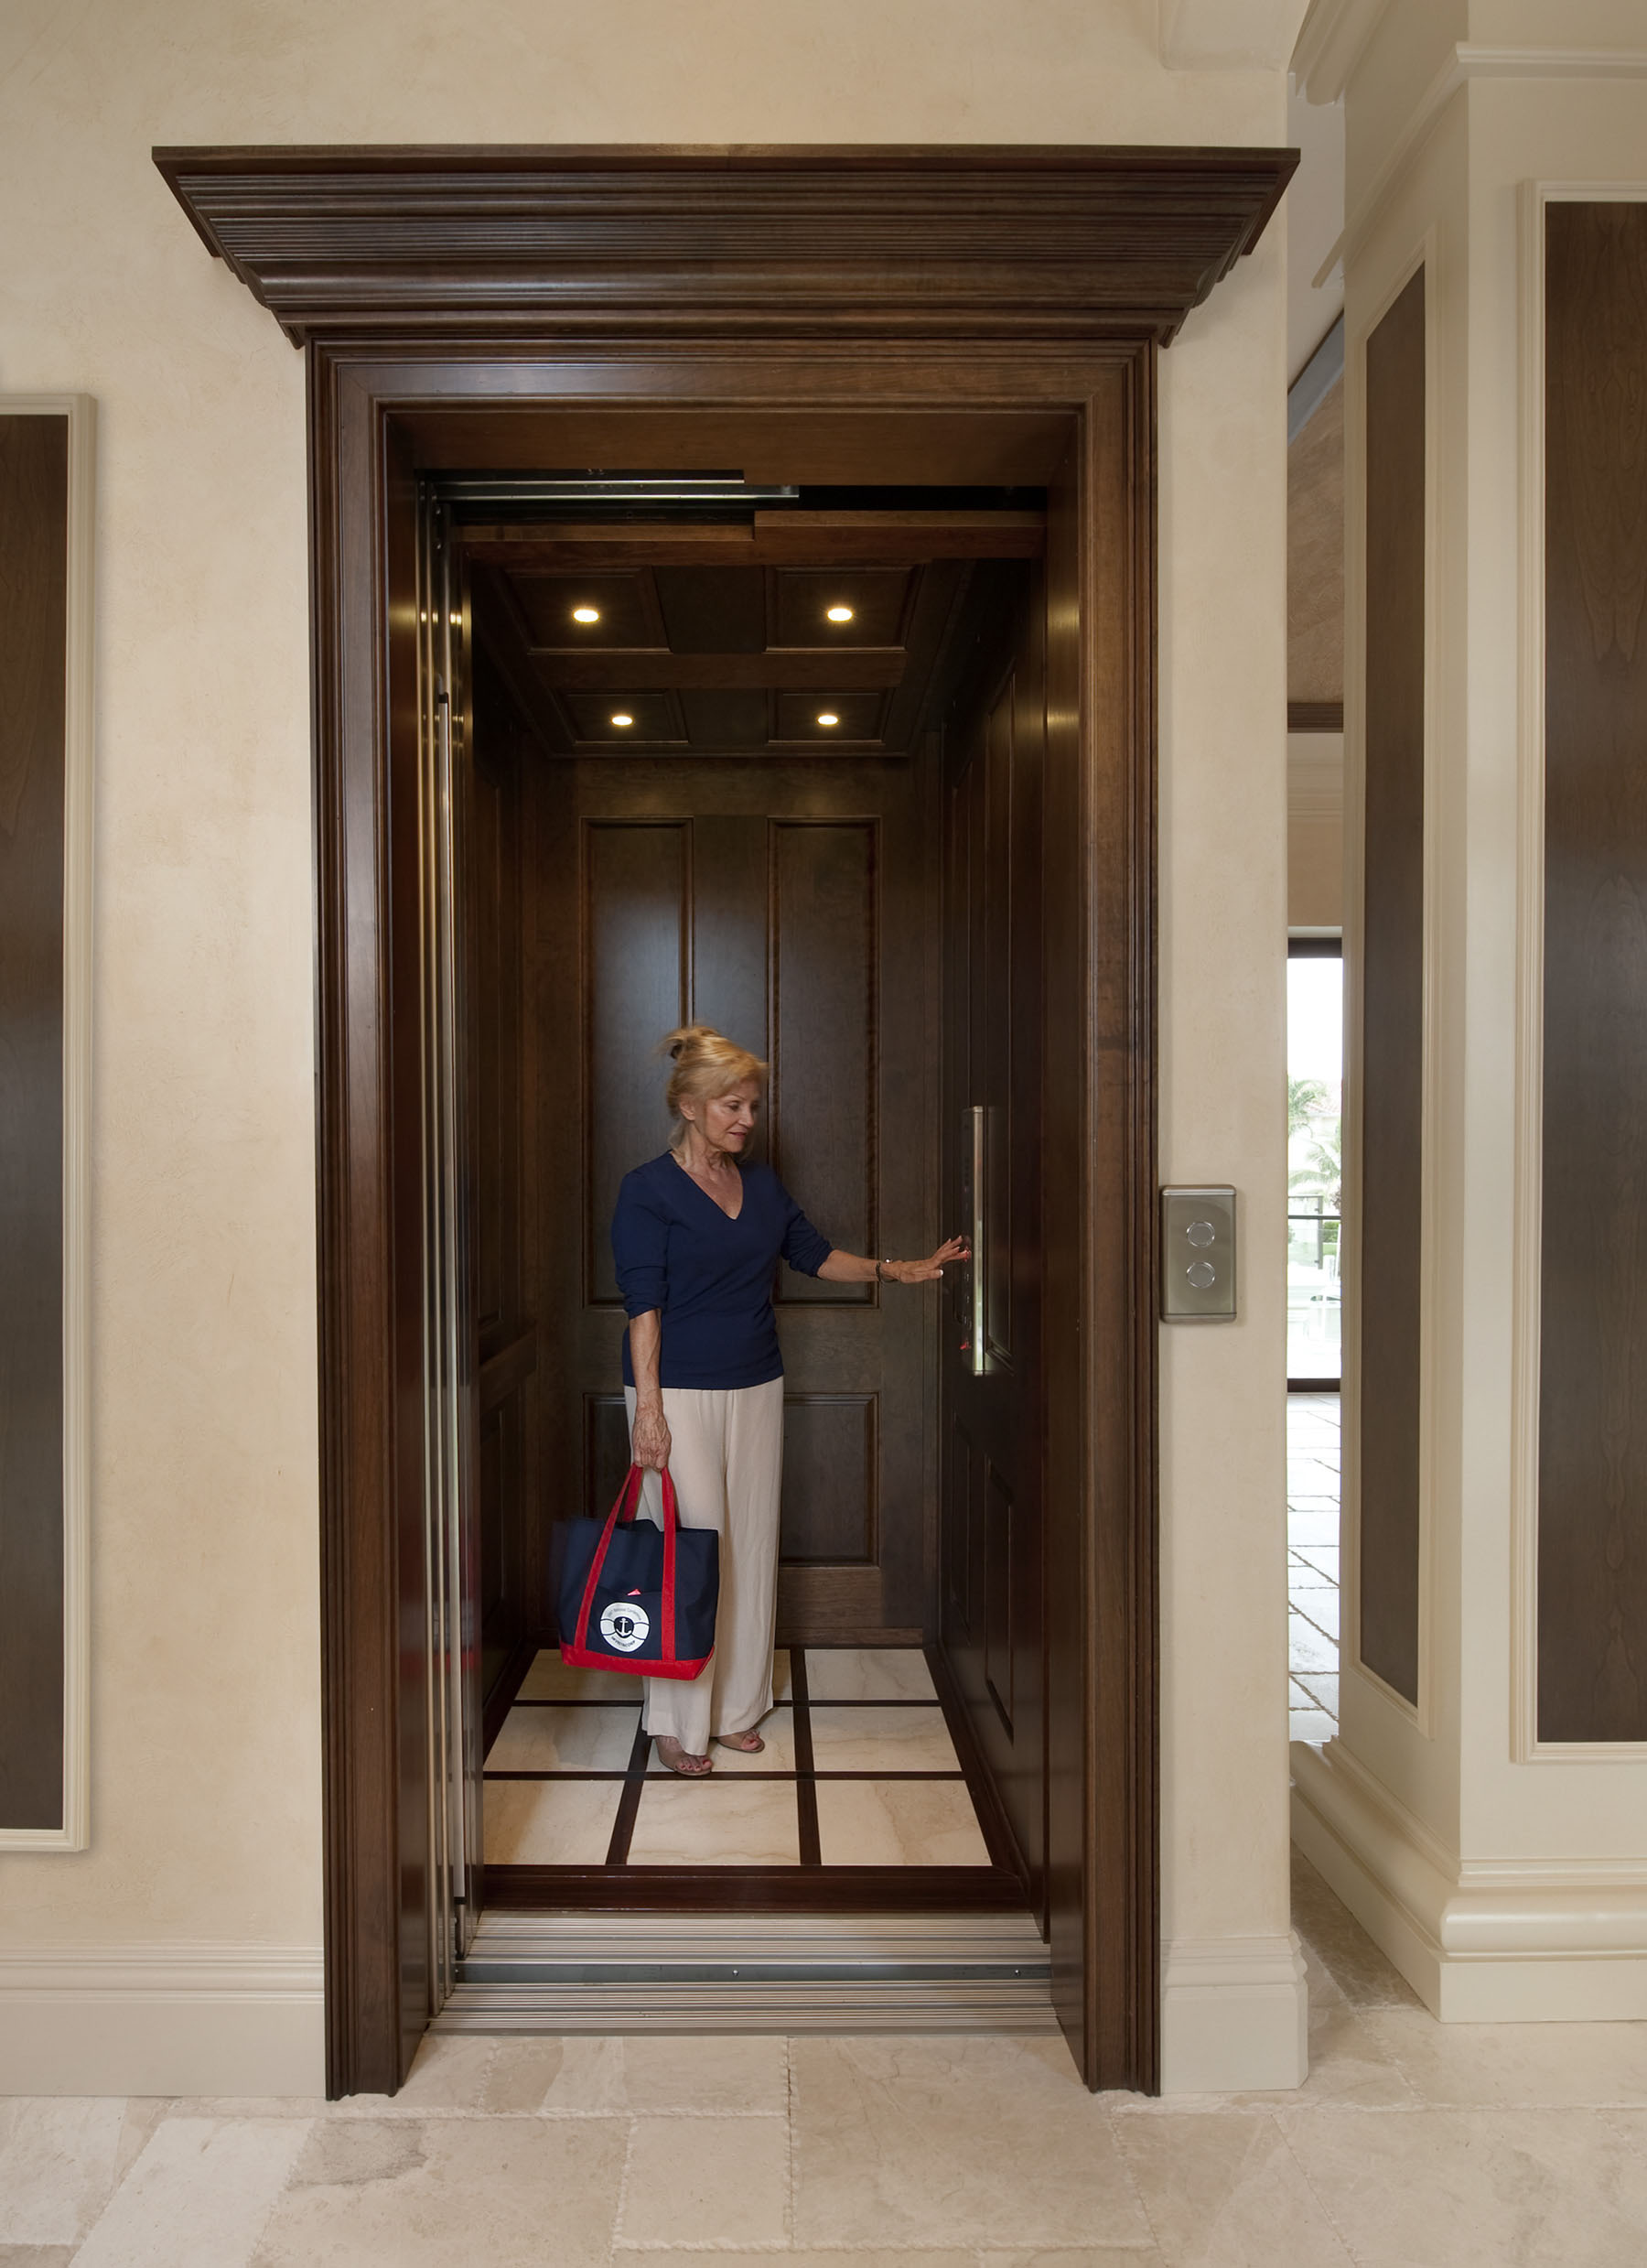 Vertechs edge full passenger vertechs Elevators for the home